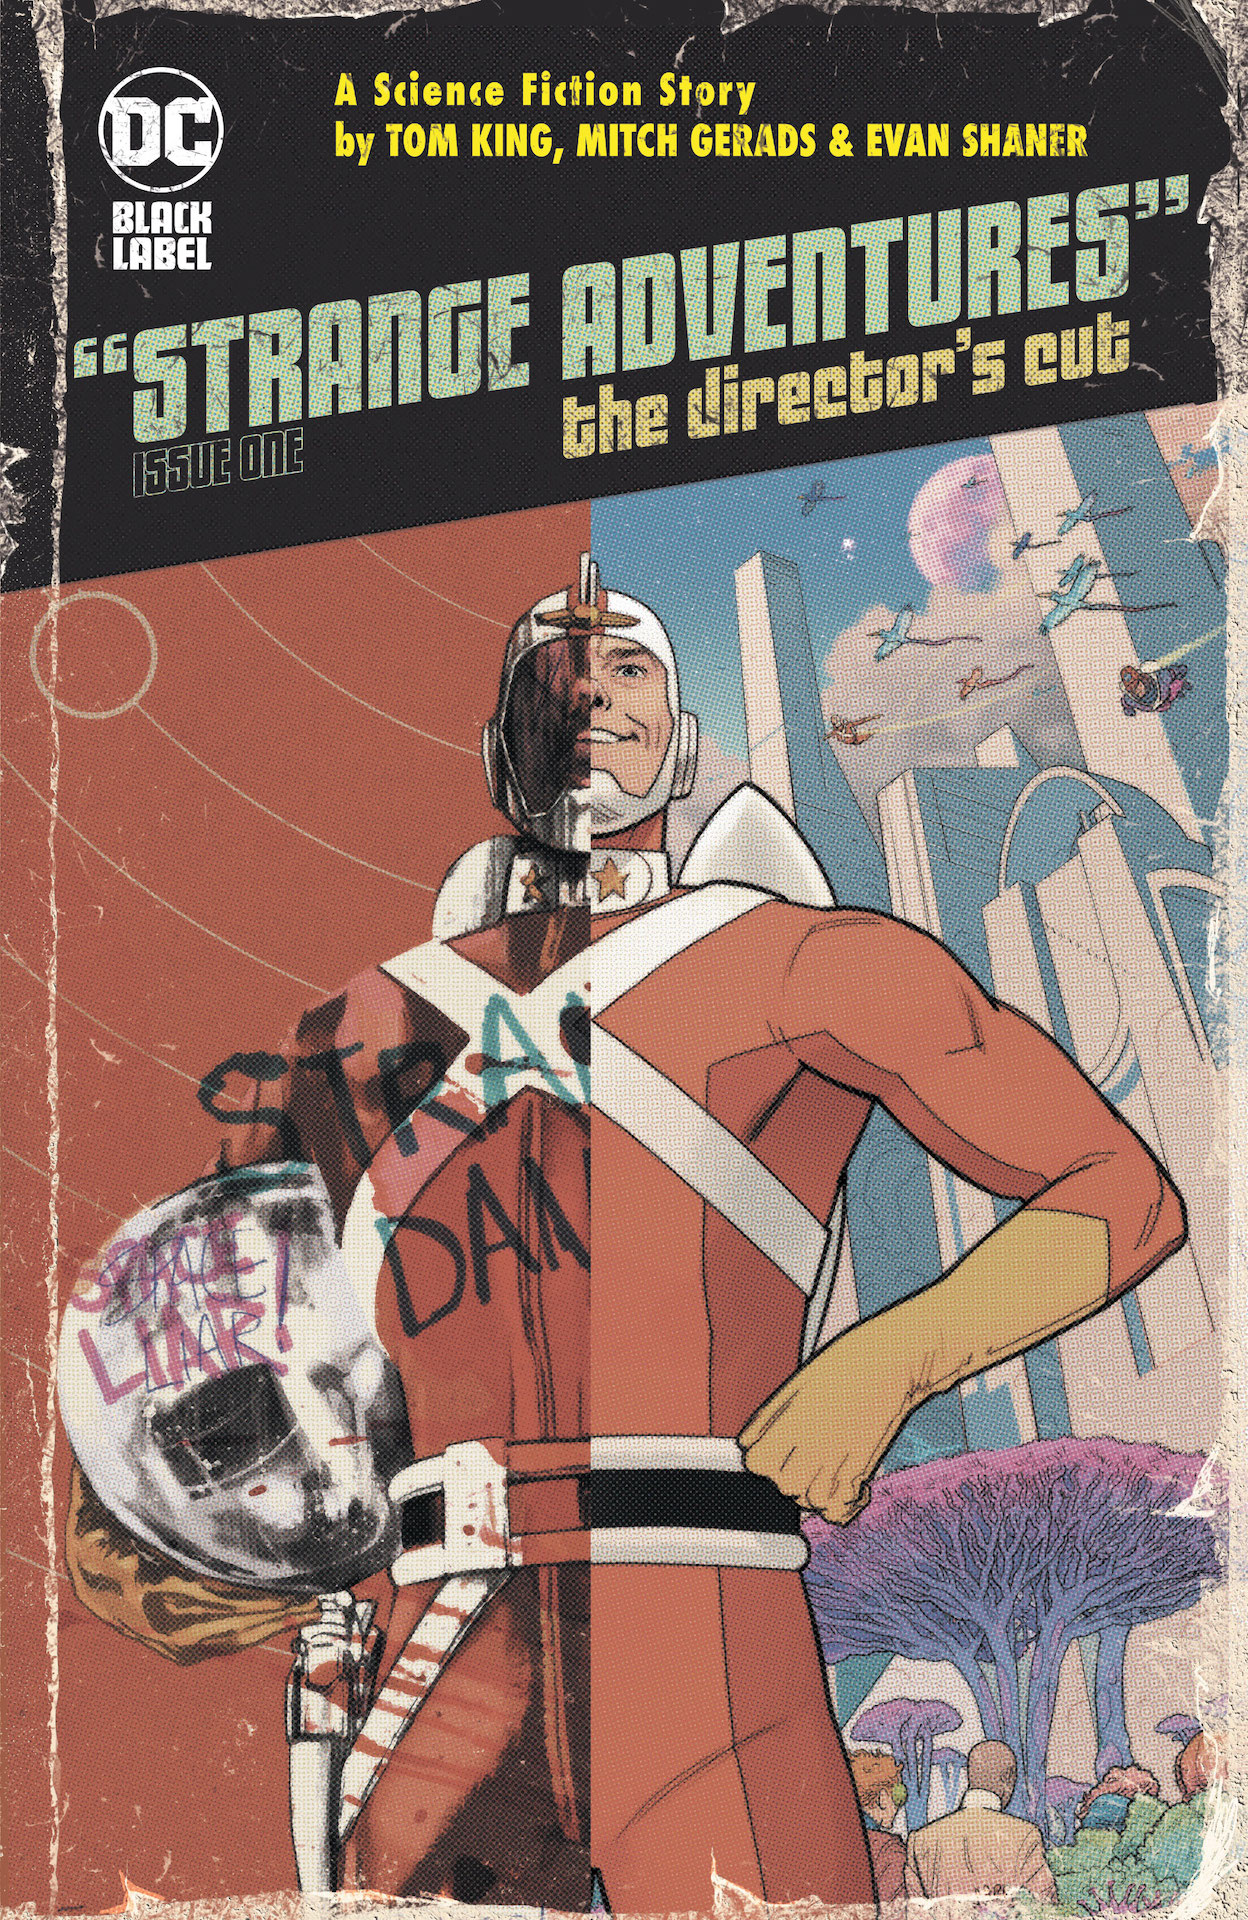 DC Preview: Strange Adventures #1: Director's Cut